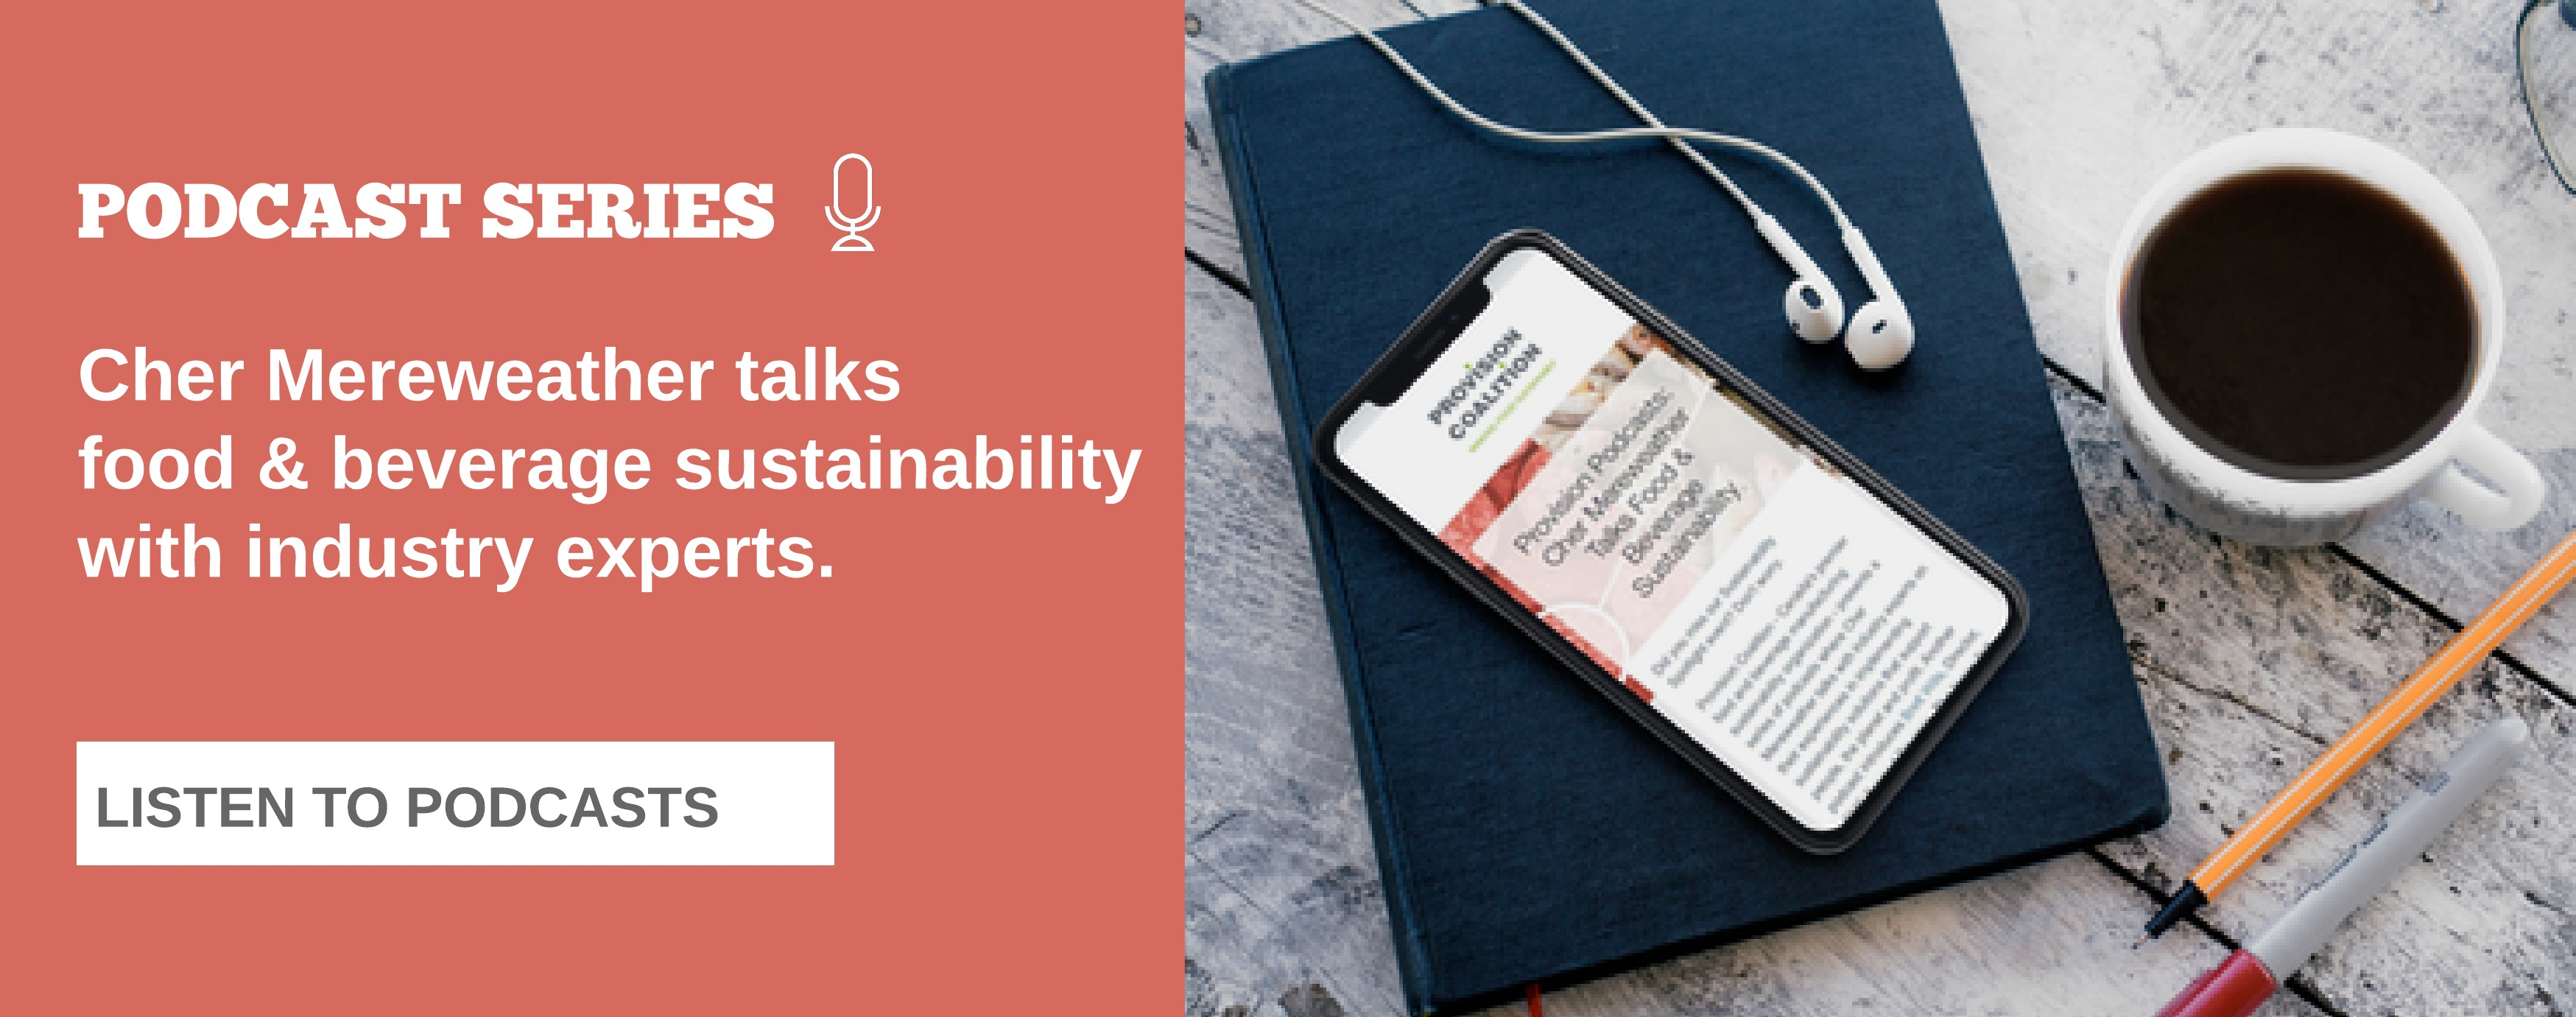 Listen to Food & Beverage Sustainability Podcasts